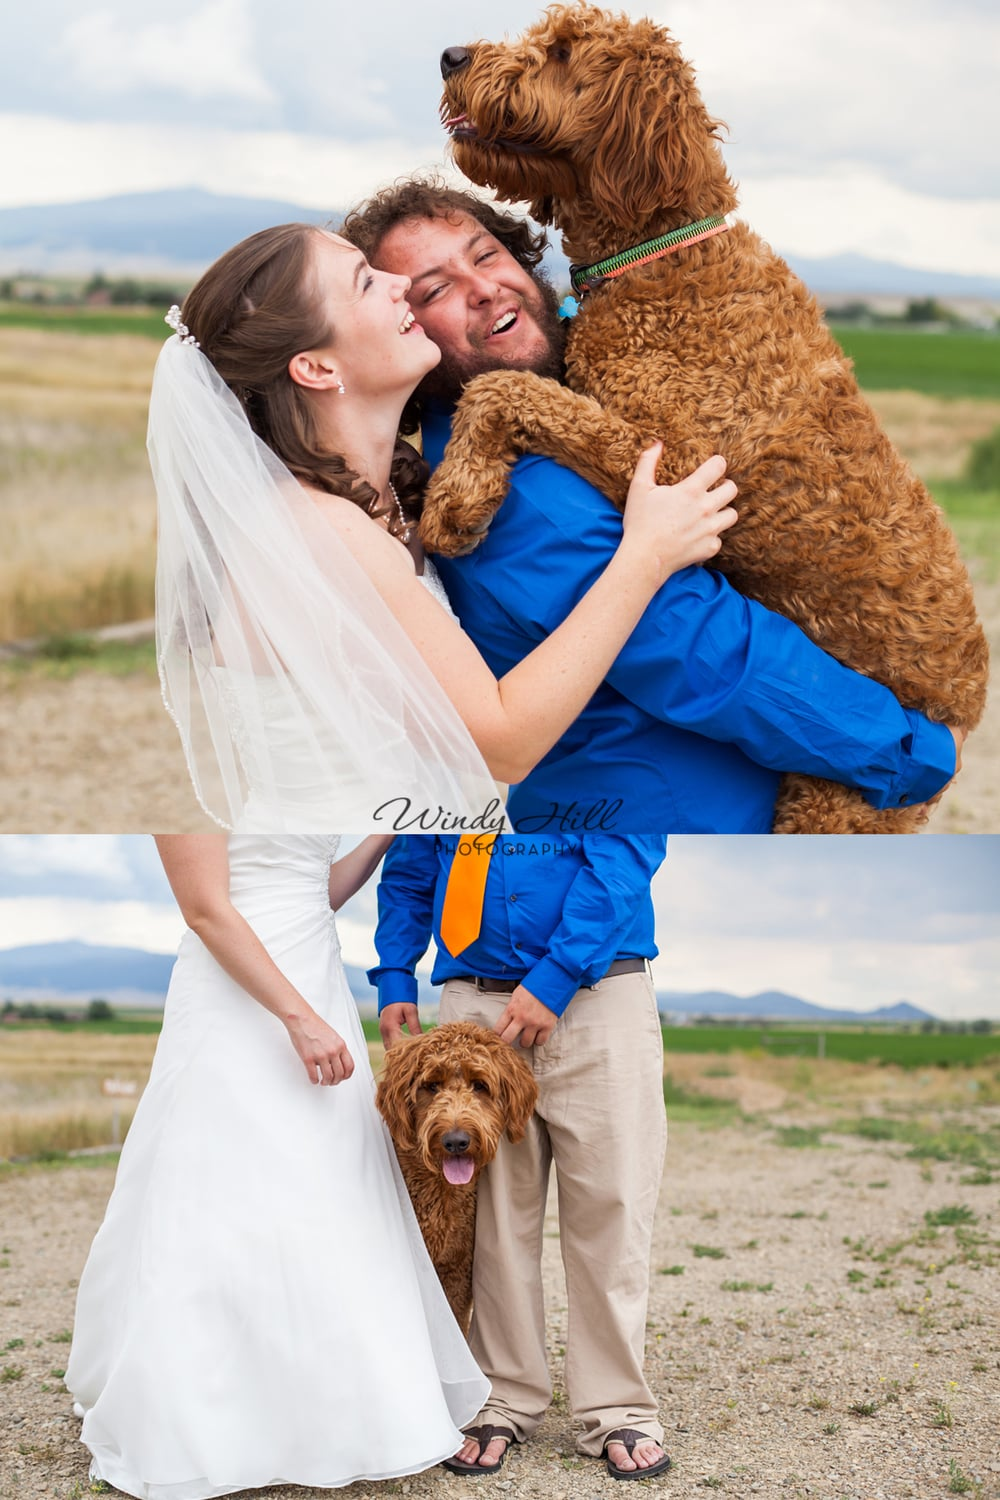 Remember that time Paul and I flew to MT for the wedding of Jake and Nicole? This is Riley, their adorable goldendoodle  who was SO happy to see them after the ceremony!